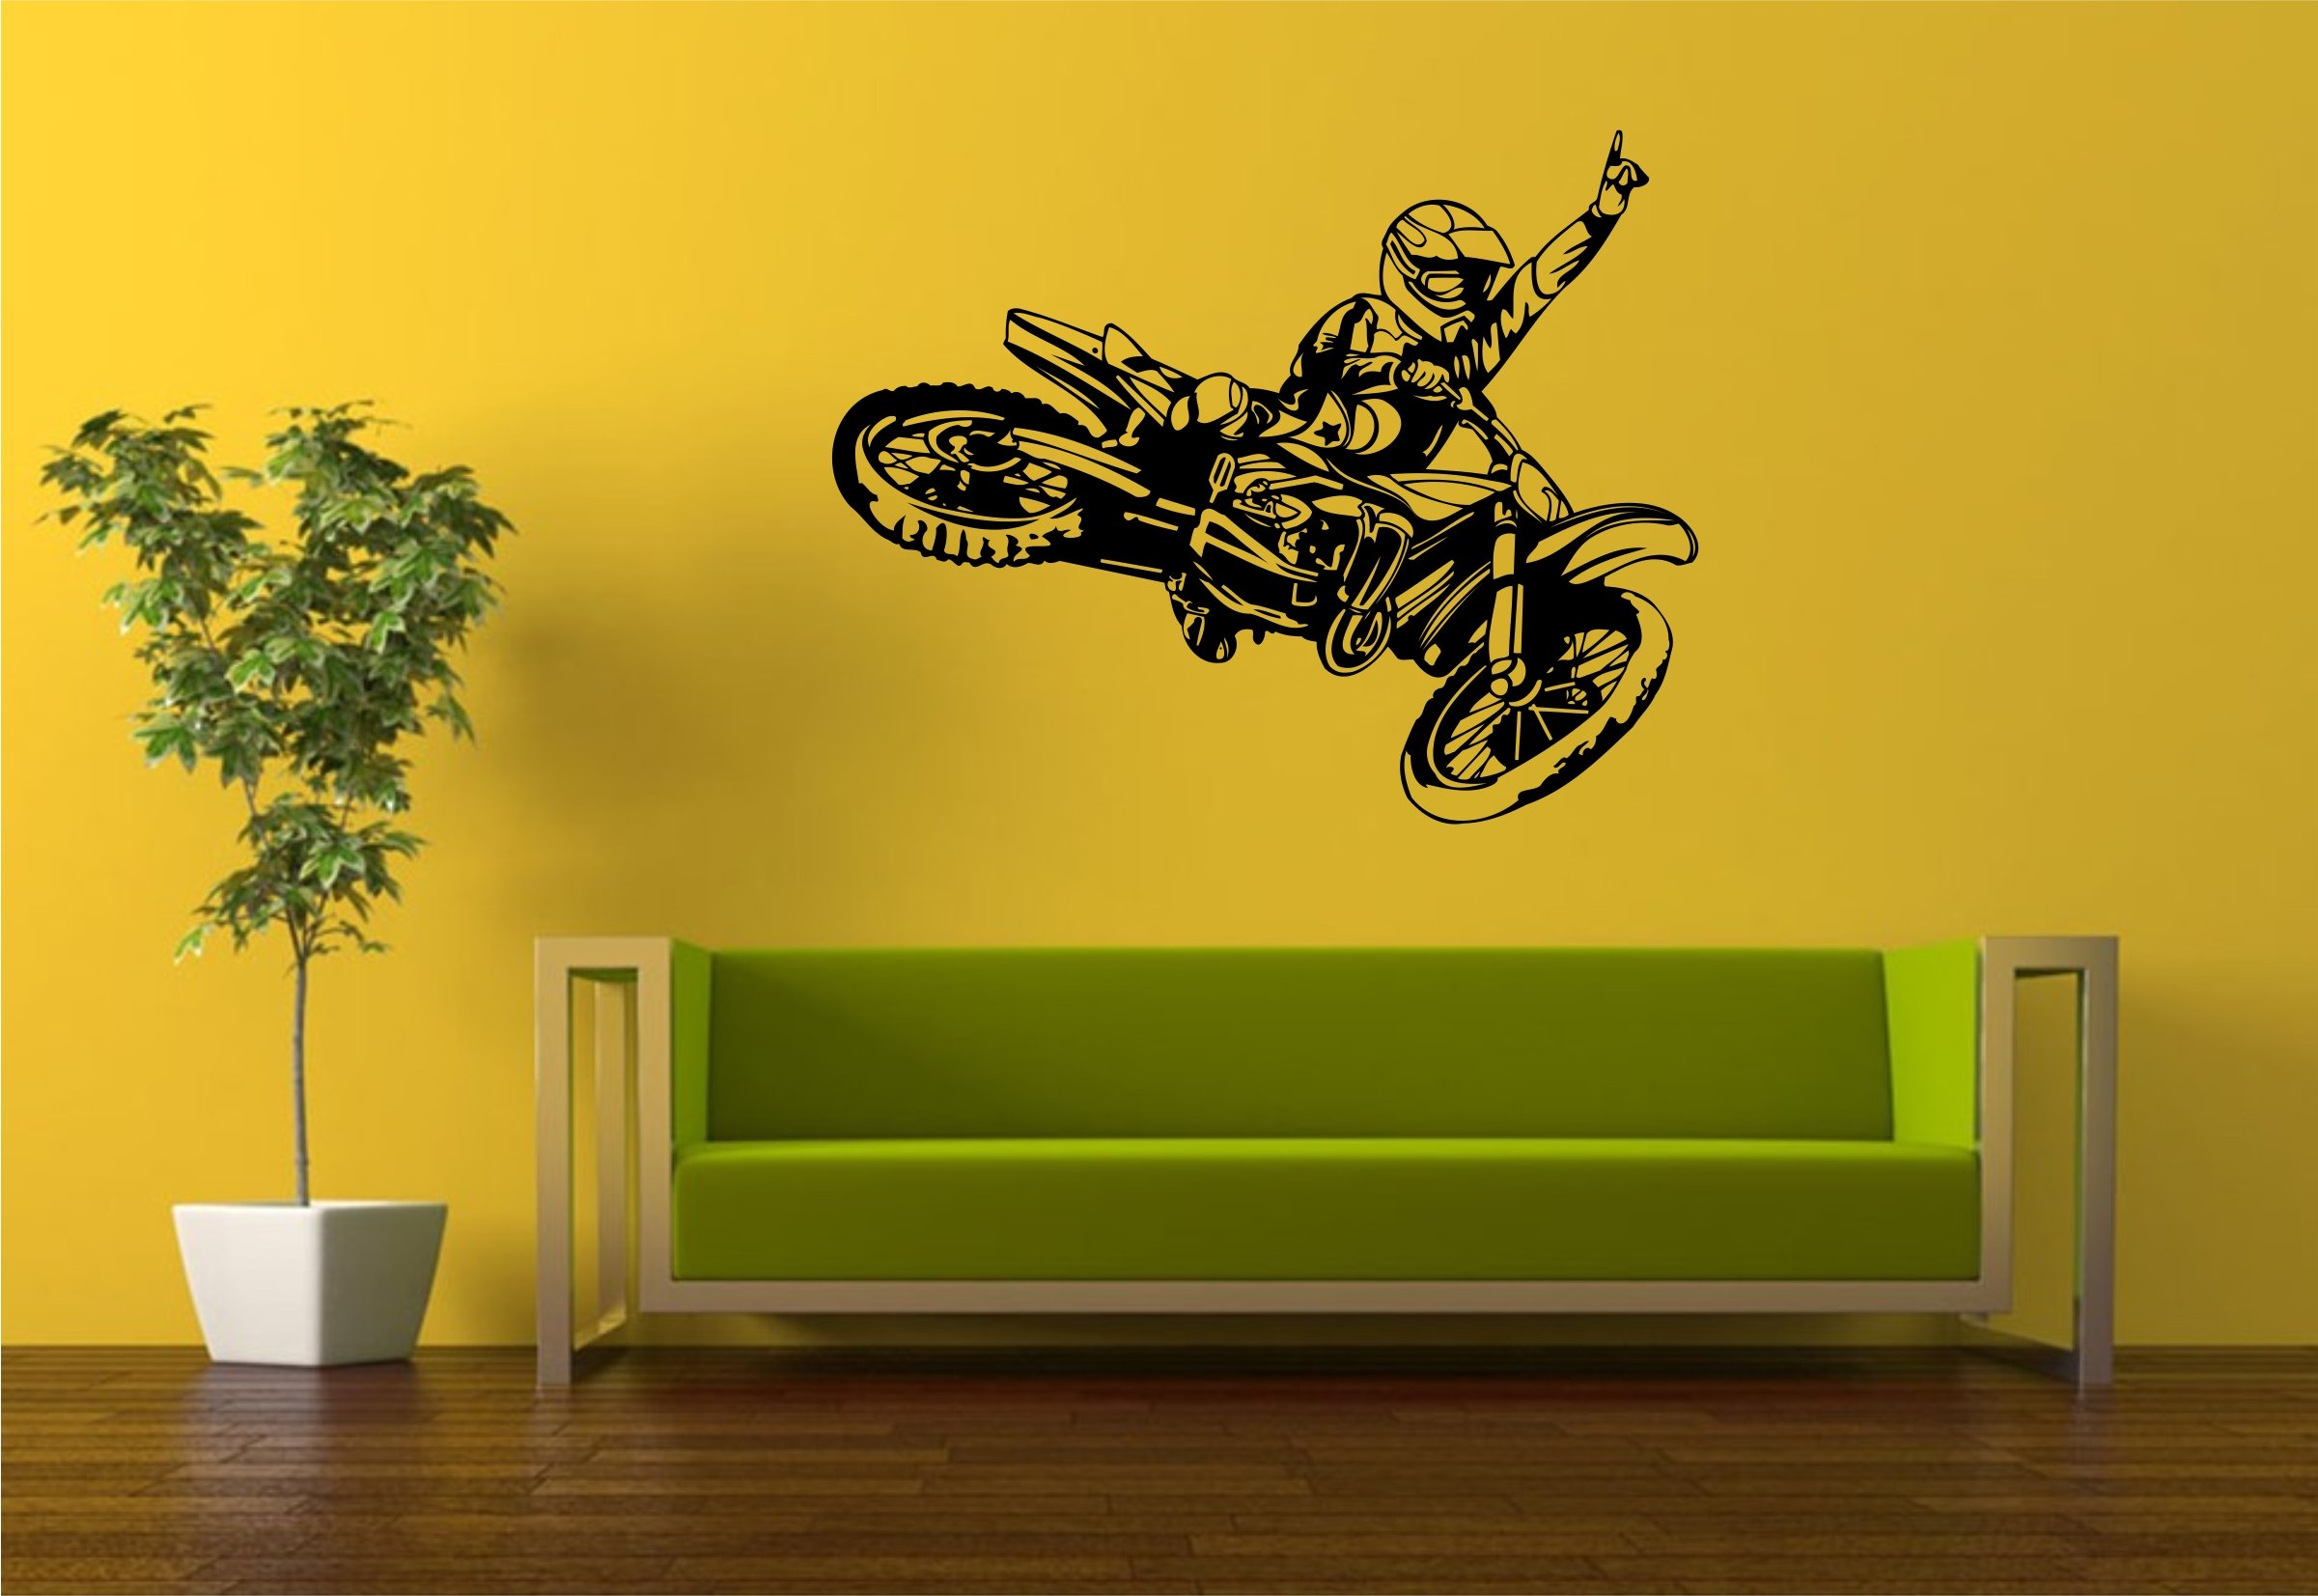 Dirtbike Room Decor: Amazon.com